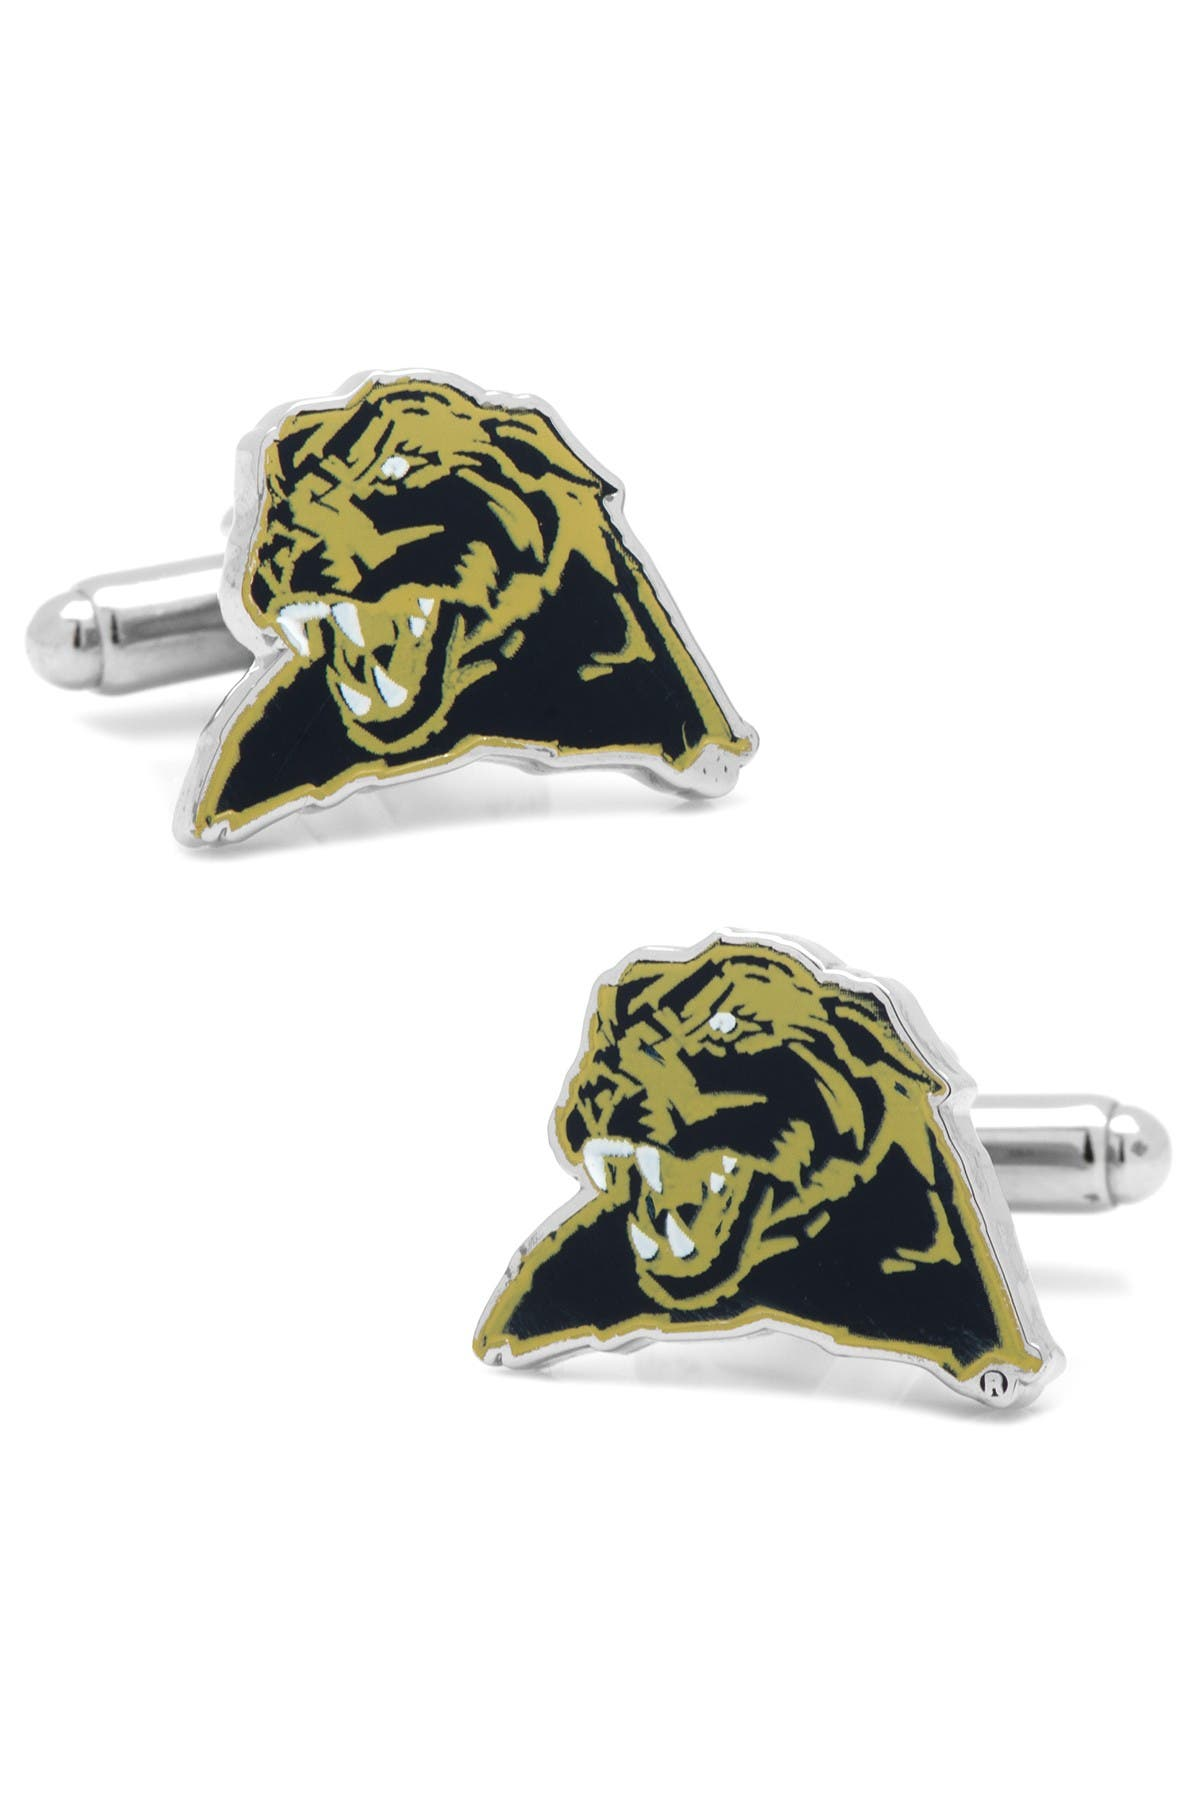 Image of Cufflinks Inc. University of Pittsburgh Panthers Cuff Links